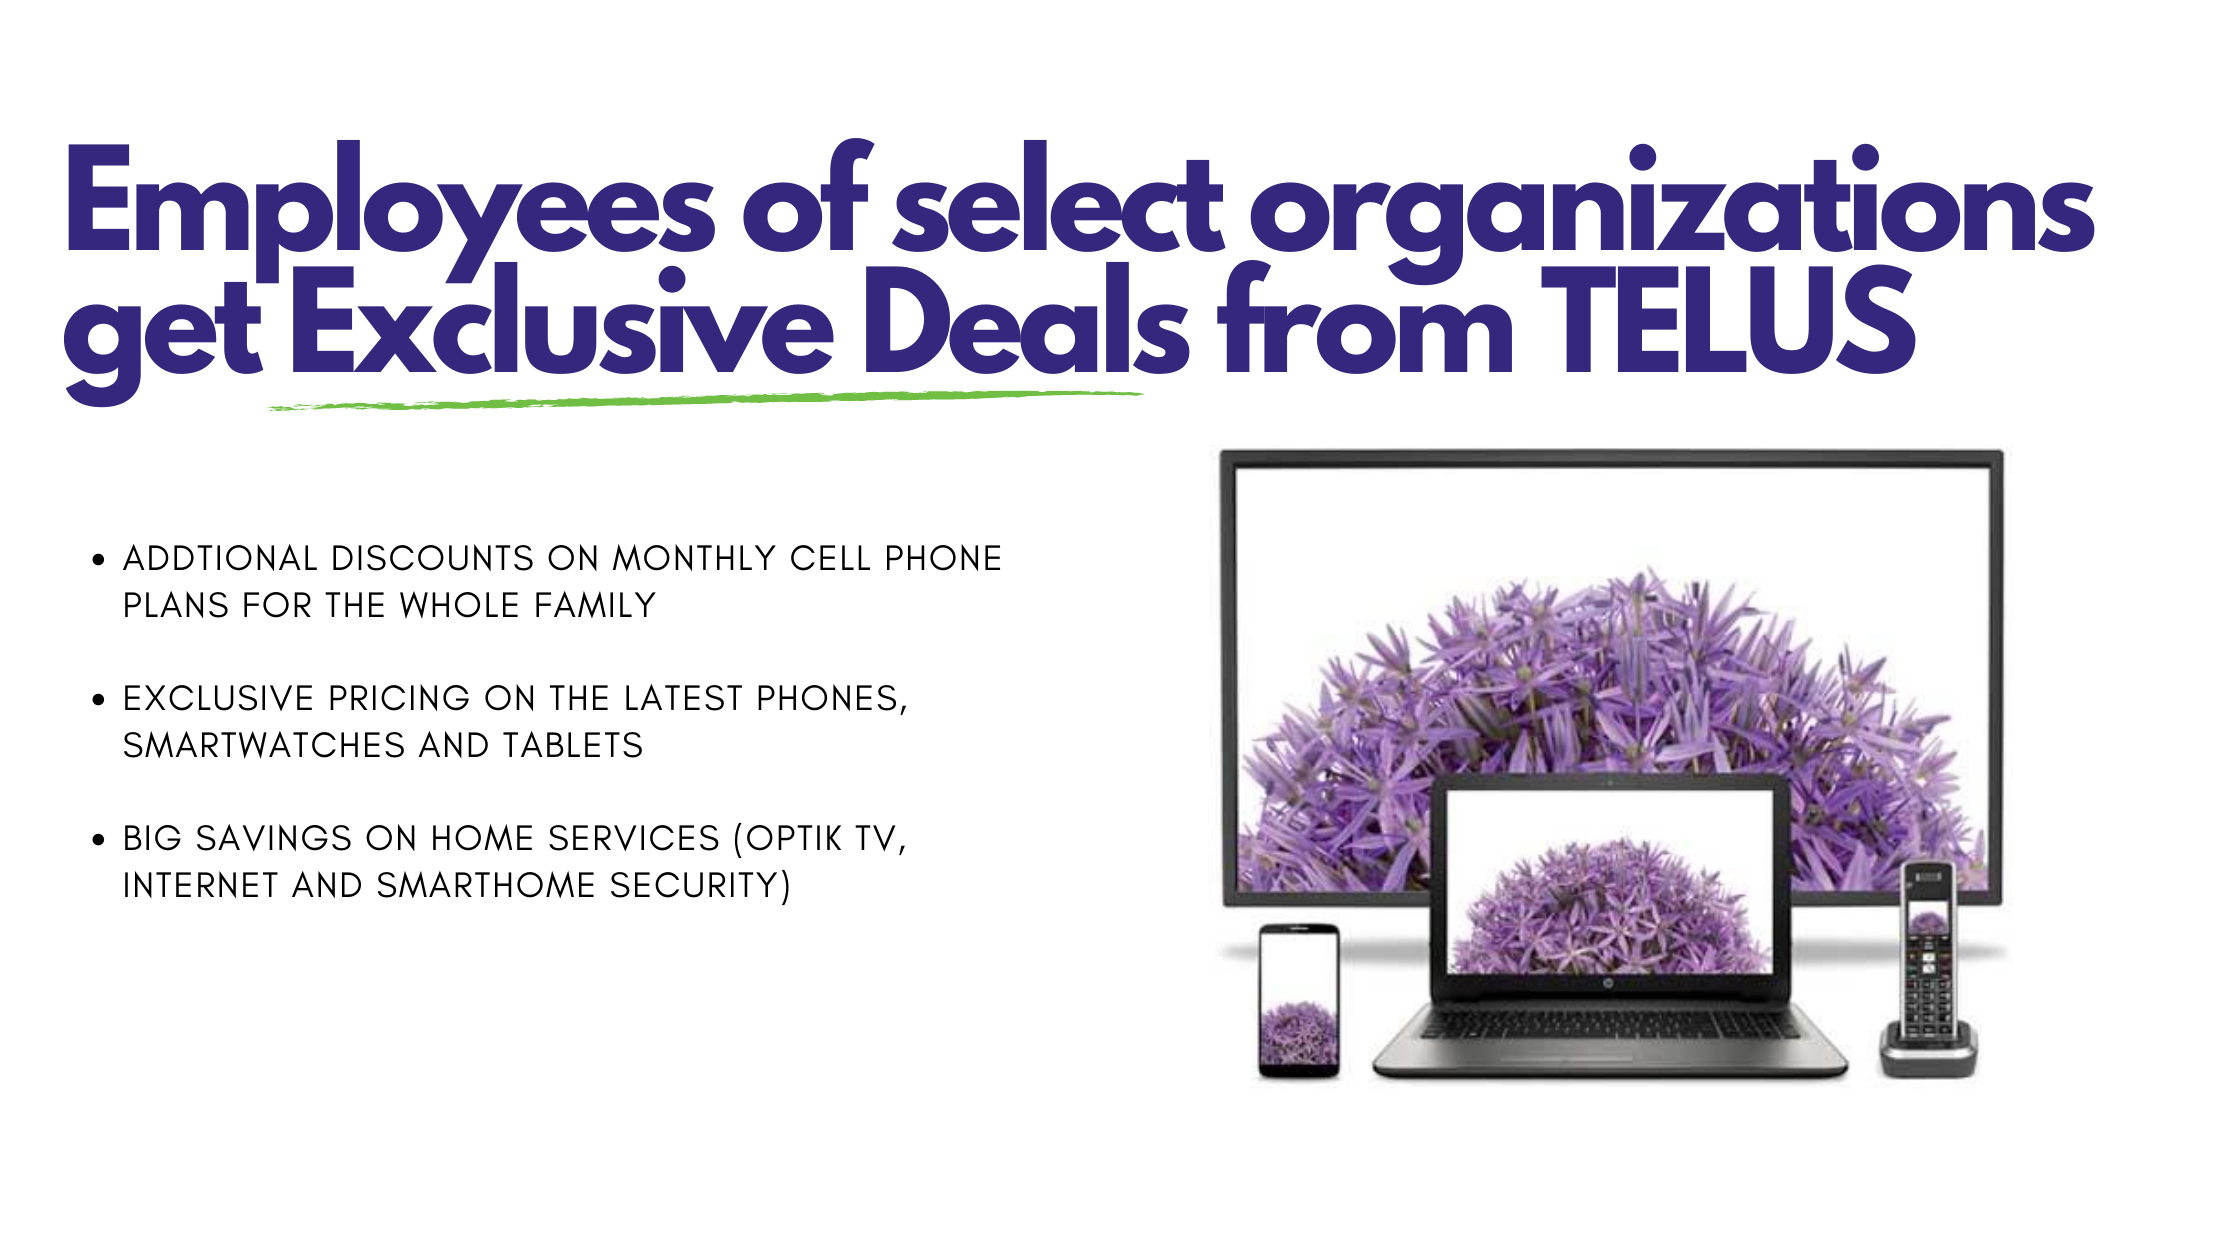 Employees of select organizations get Exclusive Deals from TELUS